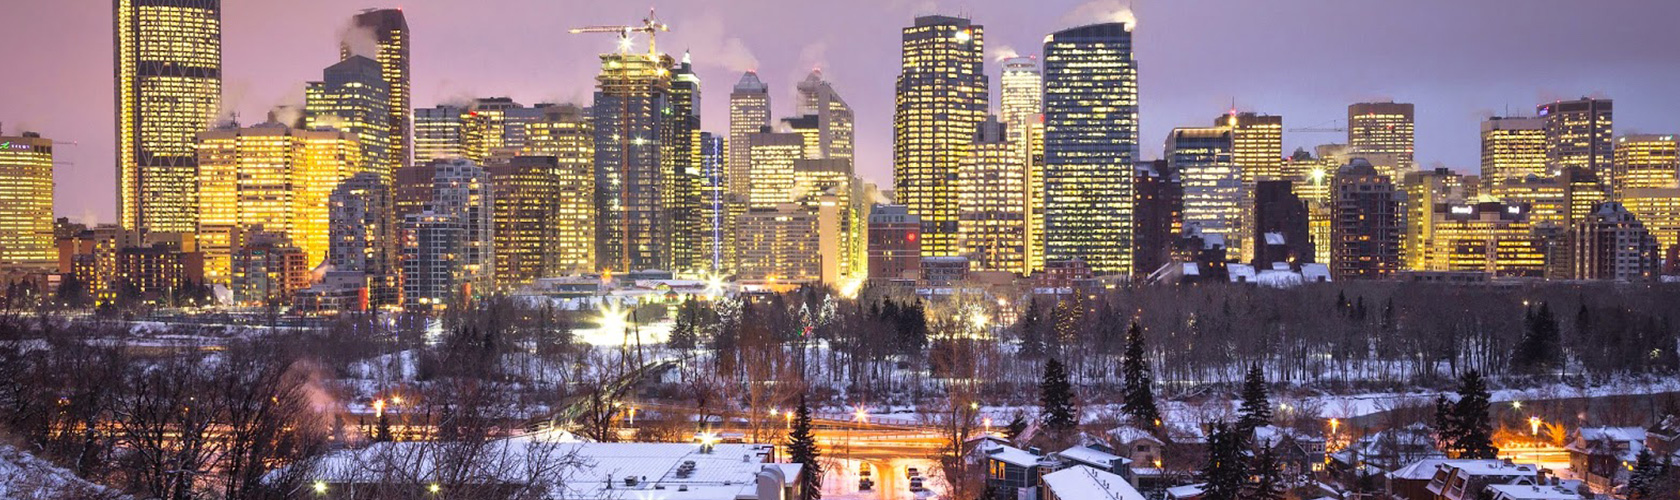 Calgary at Sunset by Sean Byrne